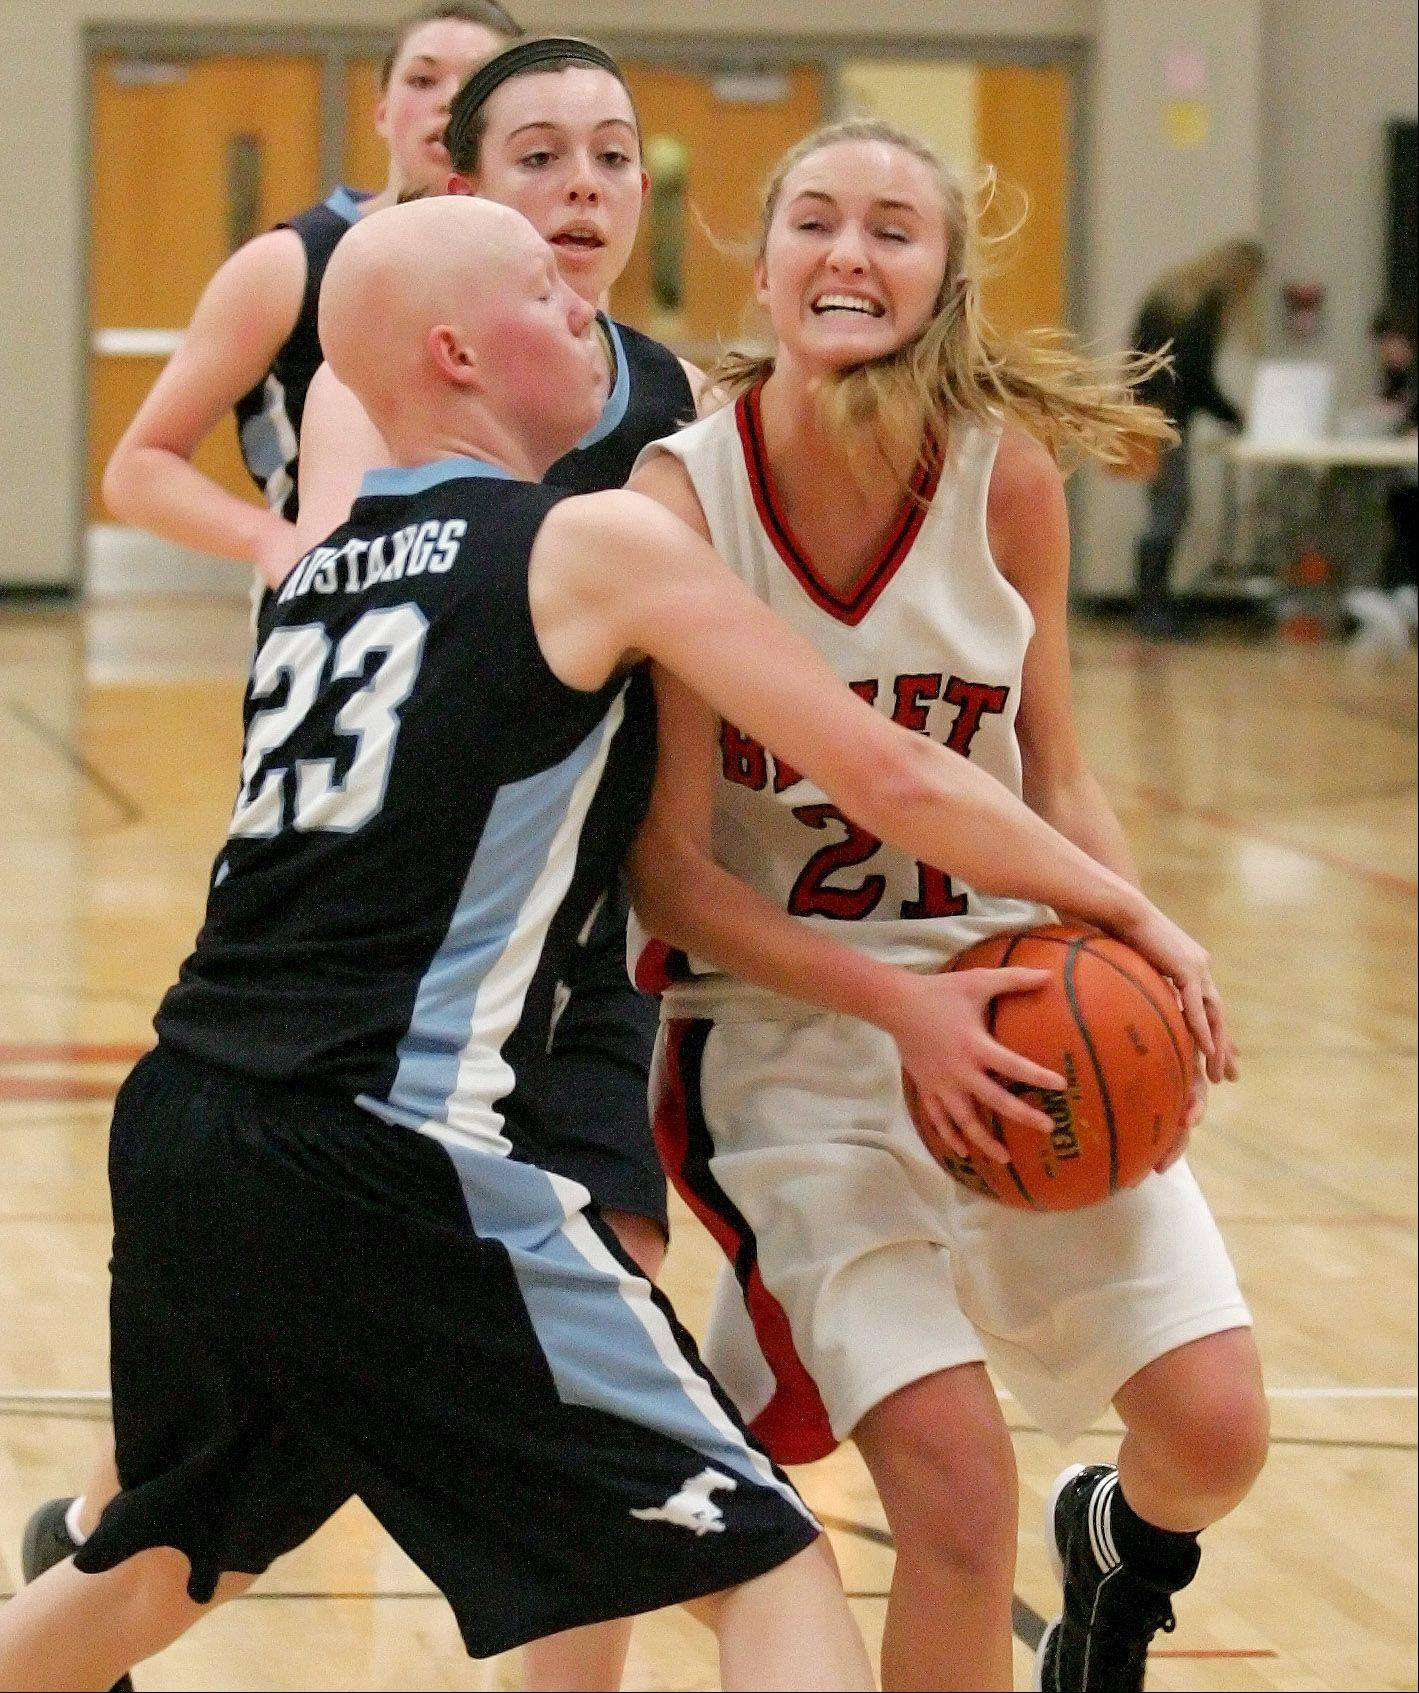 Sidney Prasse of Benet Academy, right, tries to hang onto the ball as Sarah Ludwig of Downers Grove South tries to knock it away in girls basketball action Tuesday in Lisle.